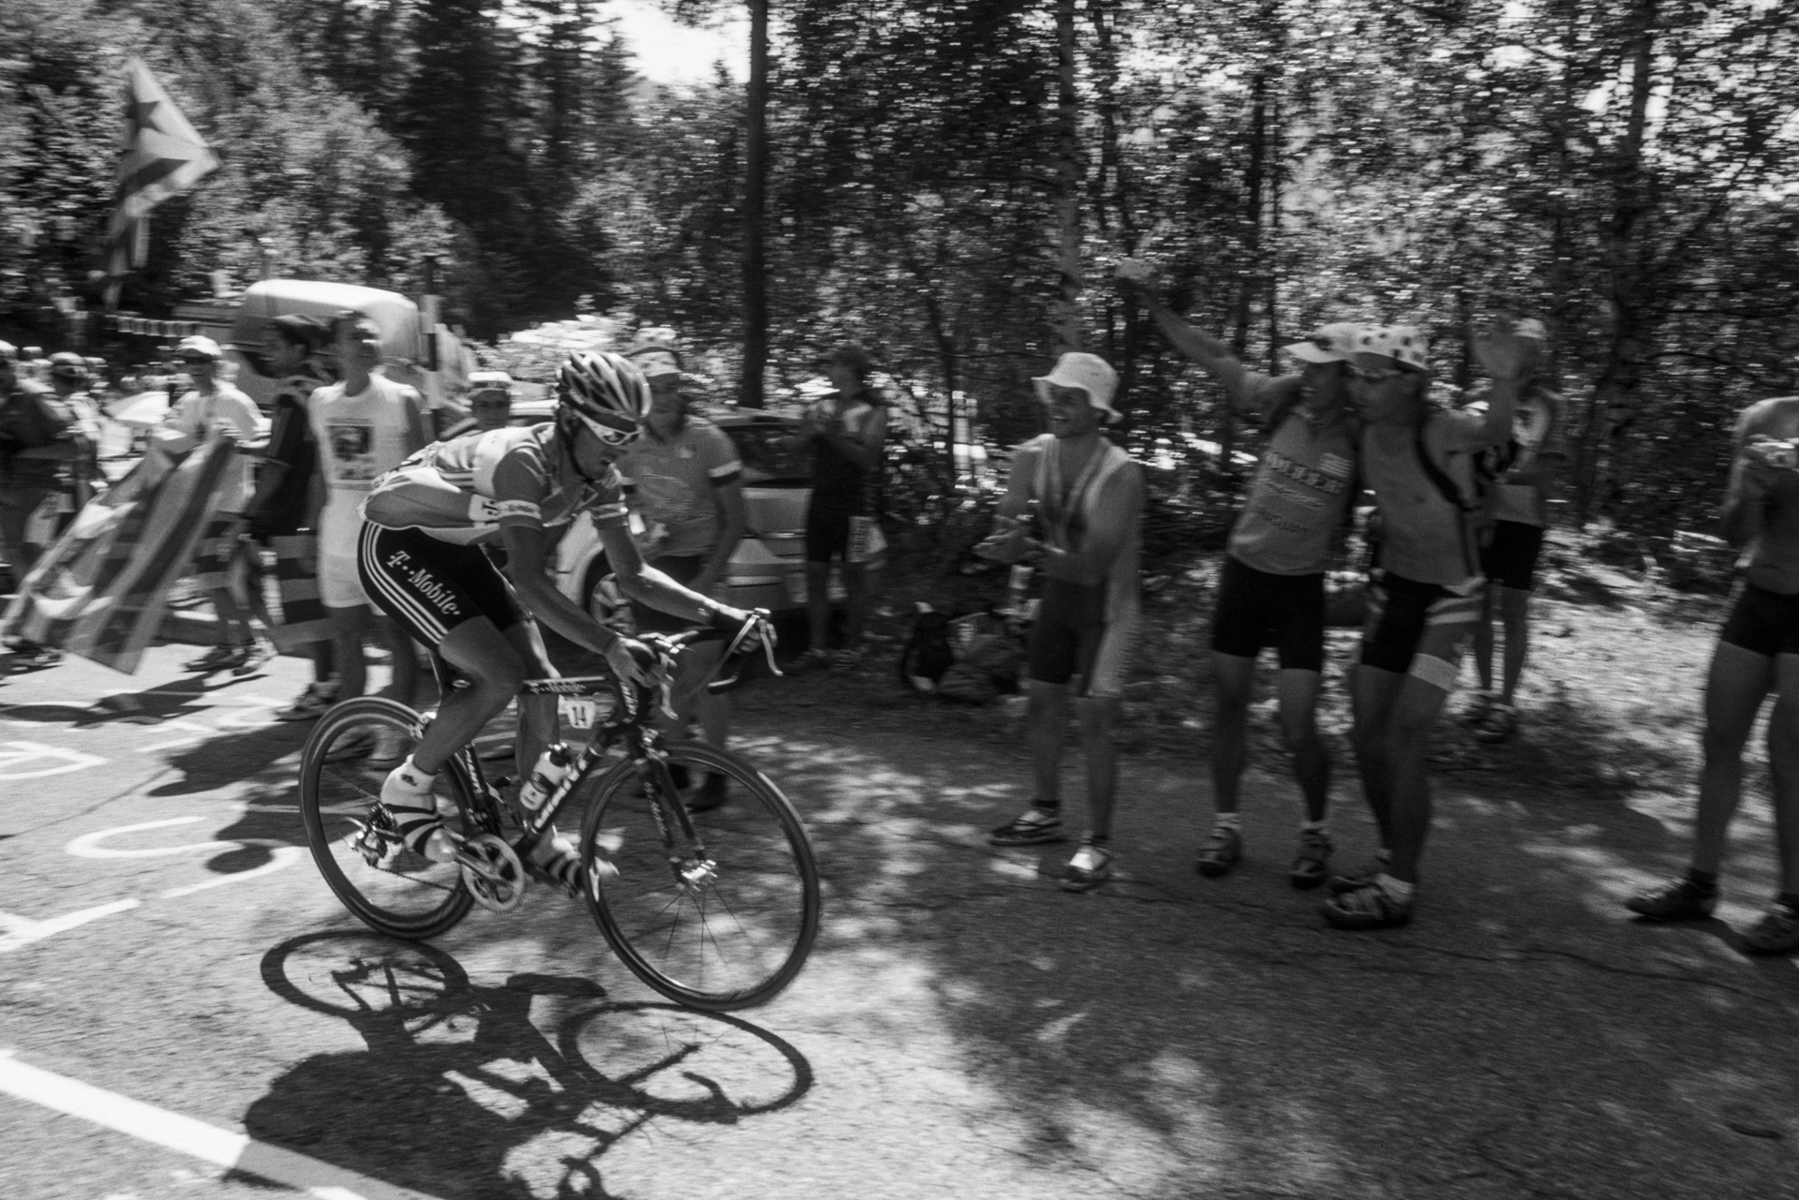 Tour de France 2005, Due to an unfortunate accident, Andreas Klöden is unable to finish the Tour. Andreas Klöden doit renoncer à cause d'un accident. Andreas Klöden muss wegen eines Unfalls aufgeben. Andreas Klöden tiene que abandonar el tour a causa de un accidente.